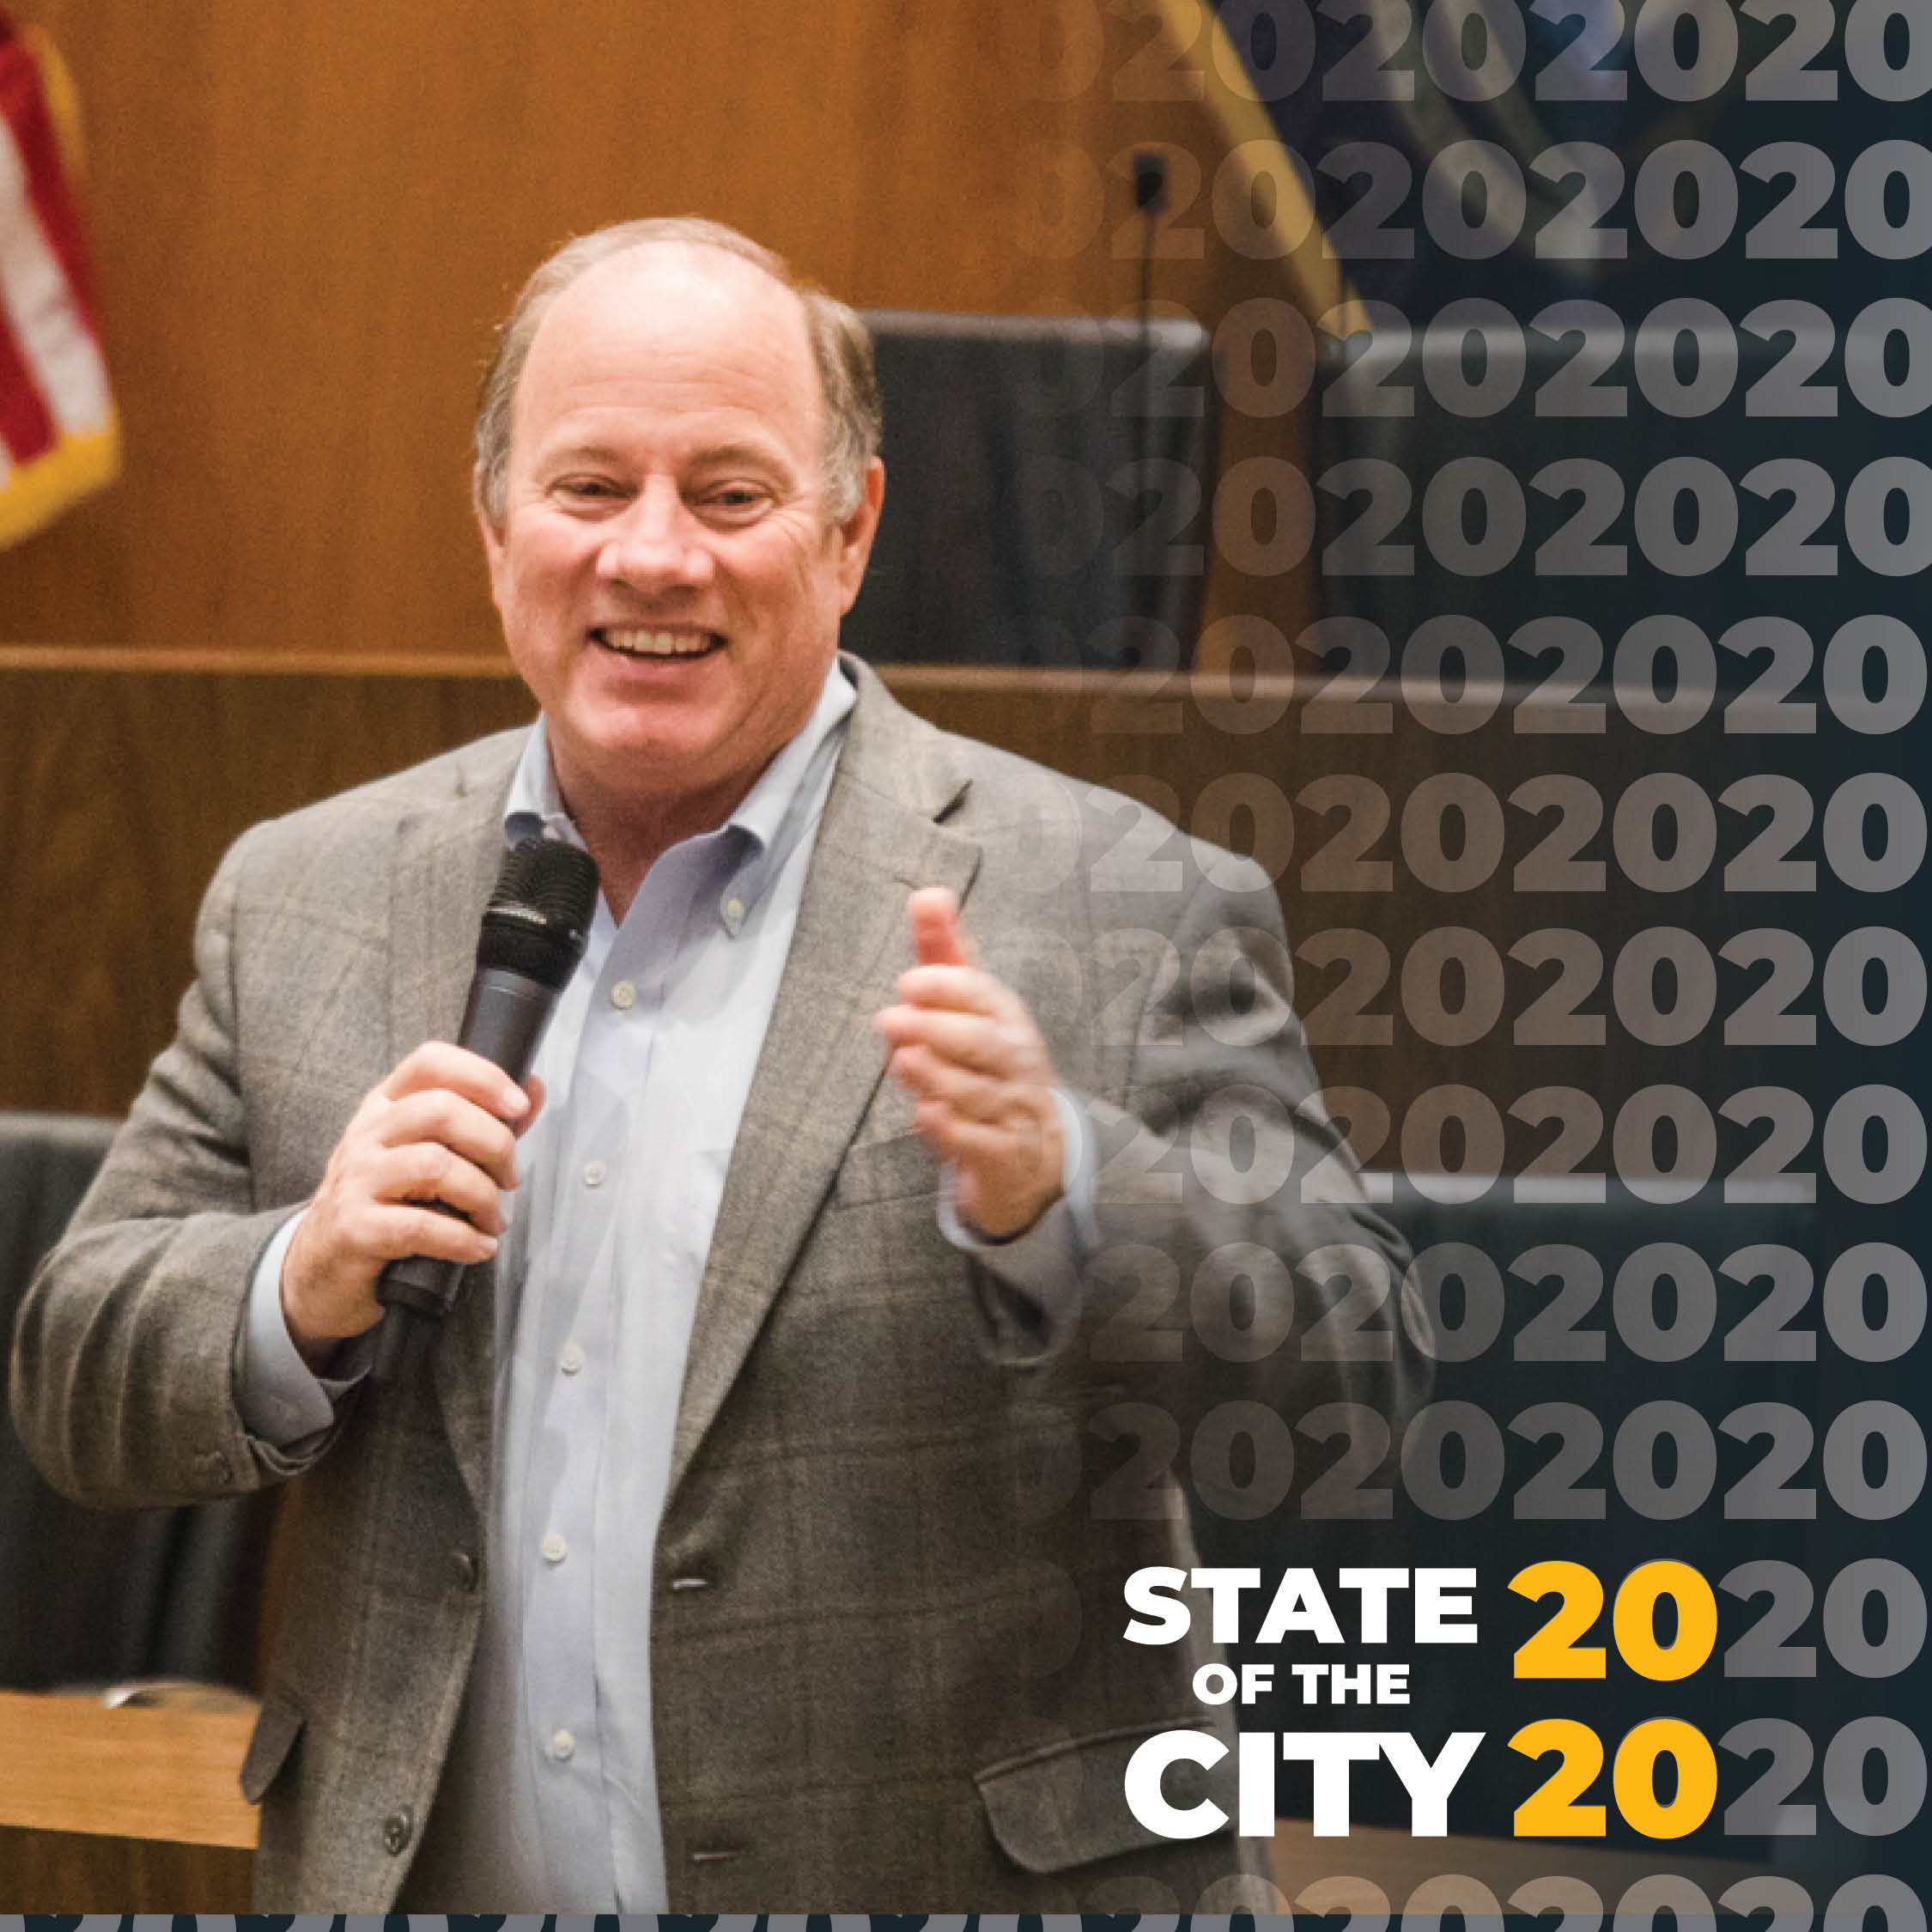 Tune in to Mayor Duggan's speech tonight at 7 p.m. on detroitmi.gov